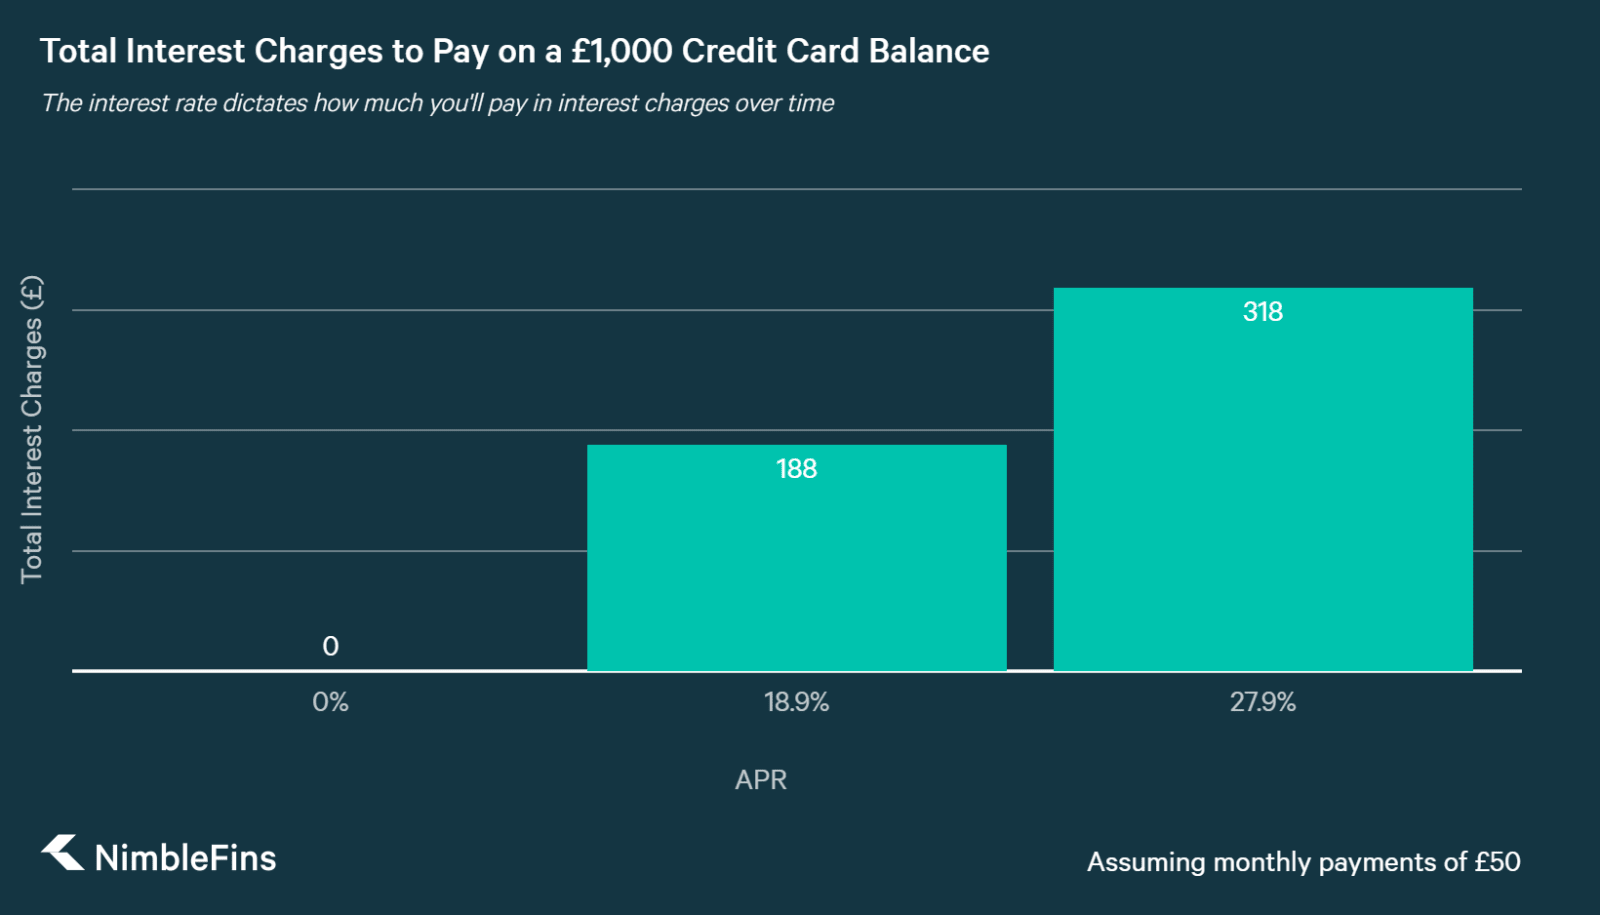 chart showing interest charges as function of APR for Halifax Purchase card